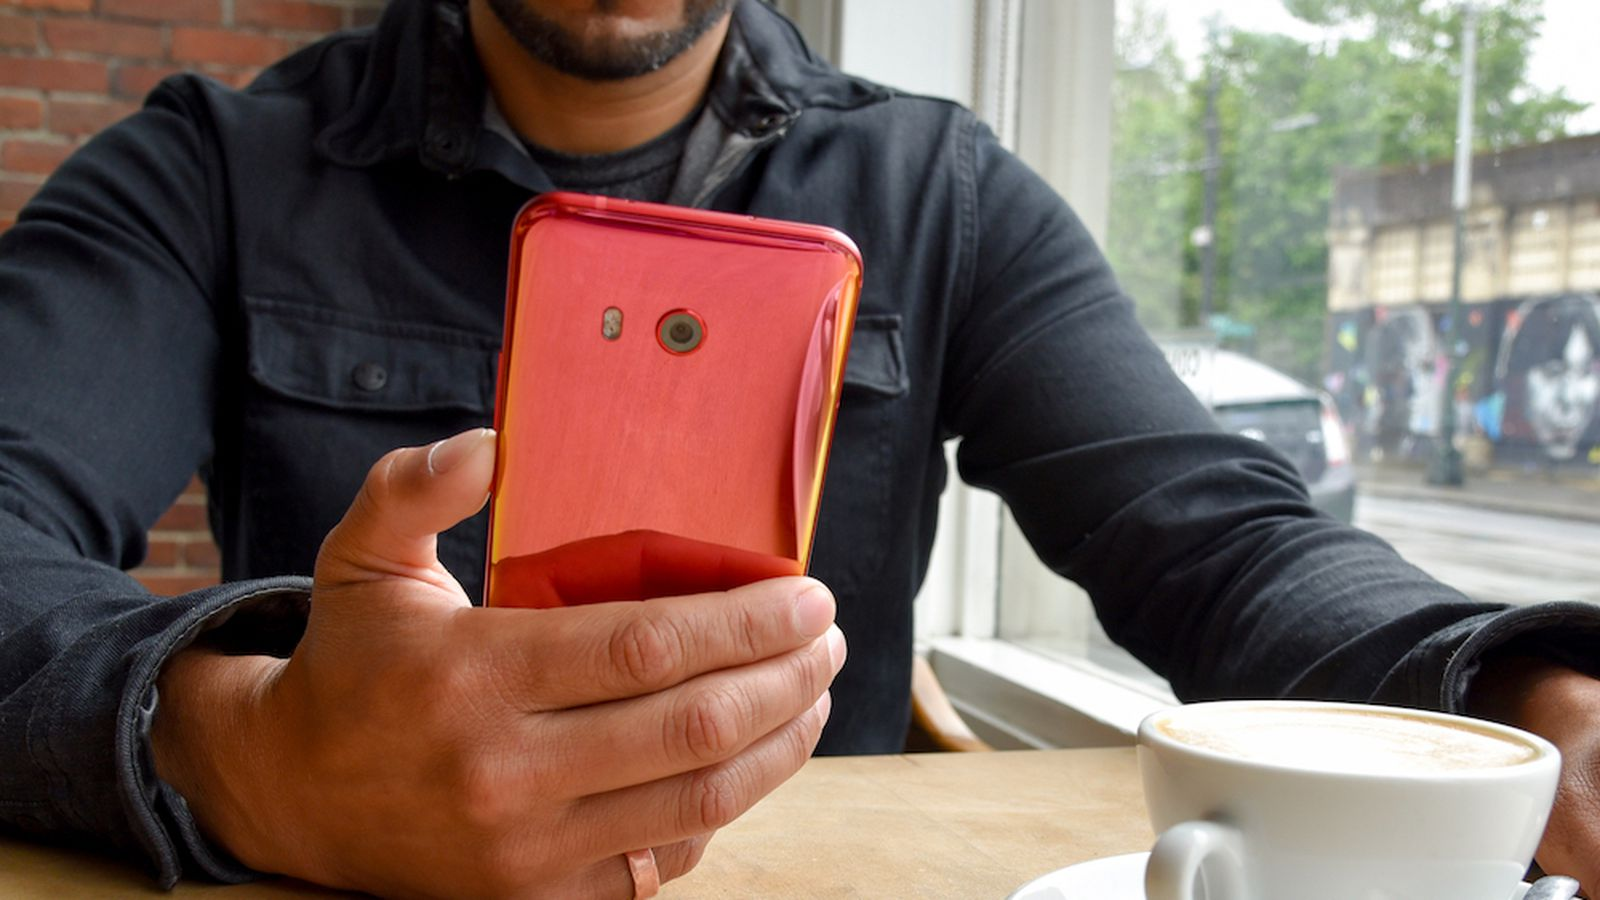 HTC is releasing a red U11 in the US